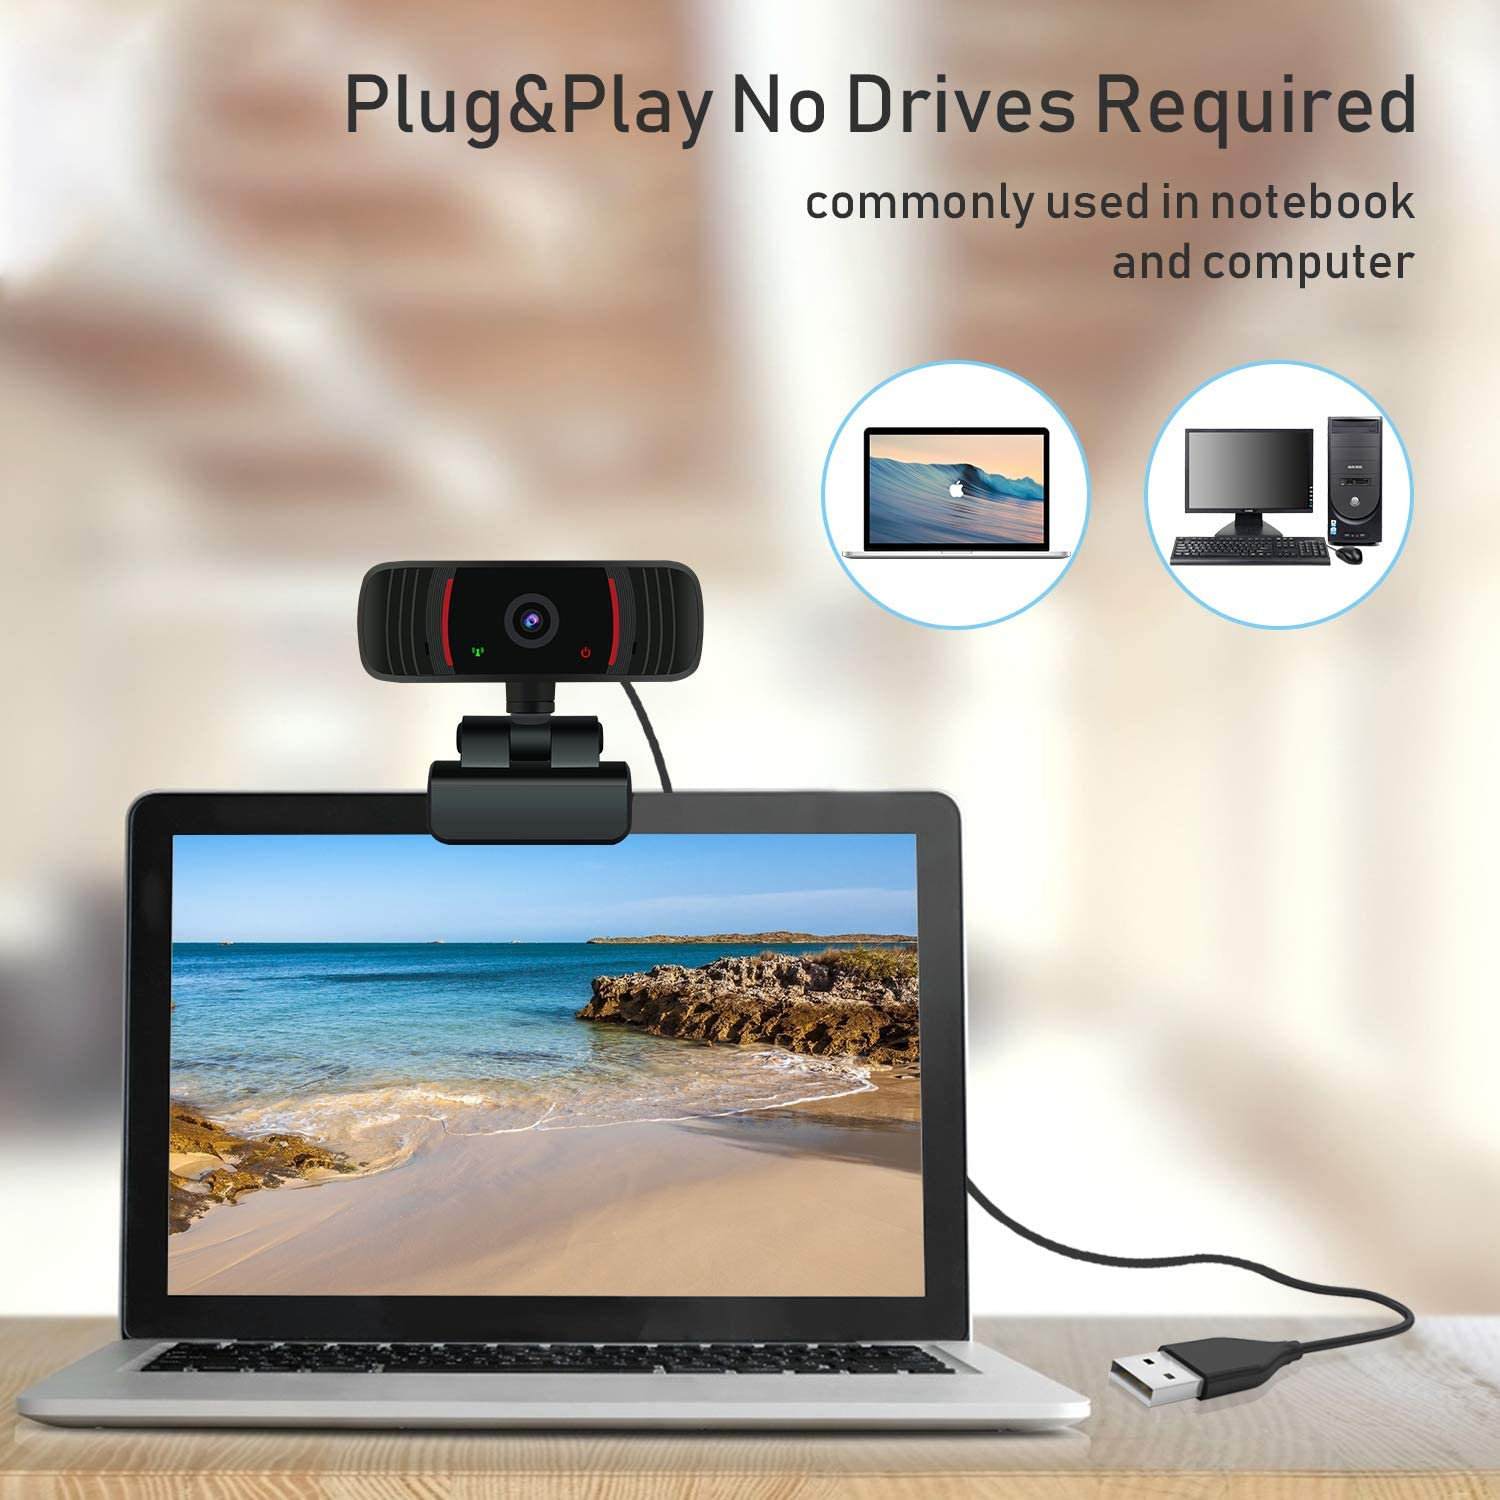 Camera and Microphone for Zoom//Video Calling Recording//Gaming//Conferencing//Skype Streaming//Laptop Peteme 1080P HD Web Cameras for Computers with Plug and Play USB Webcam with Microphone for Desktop